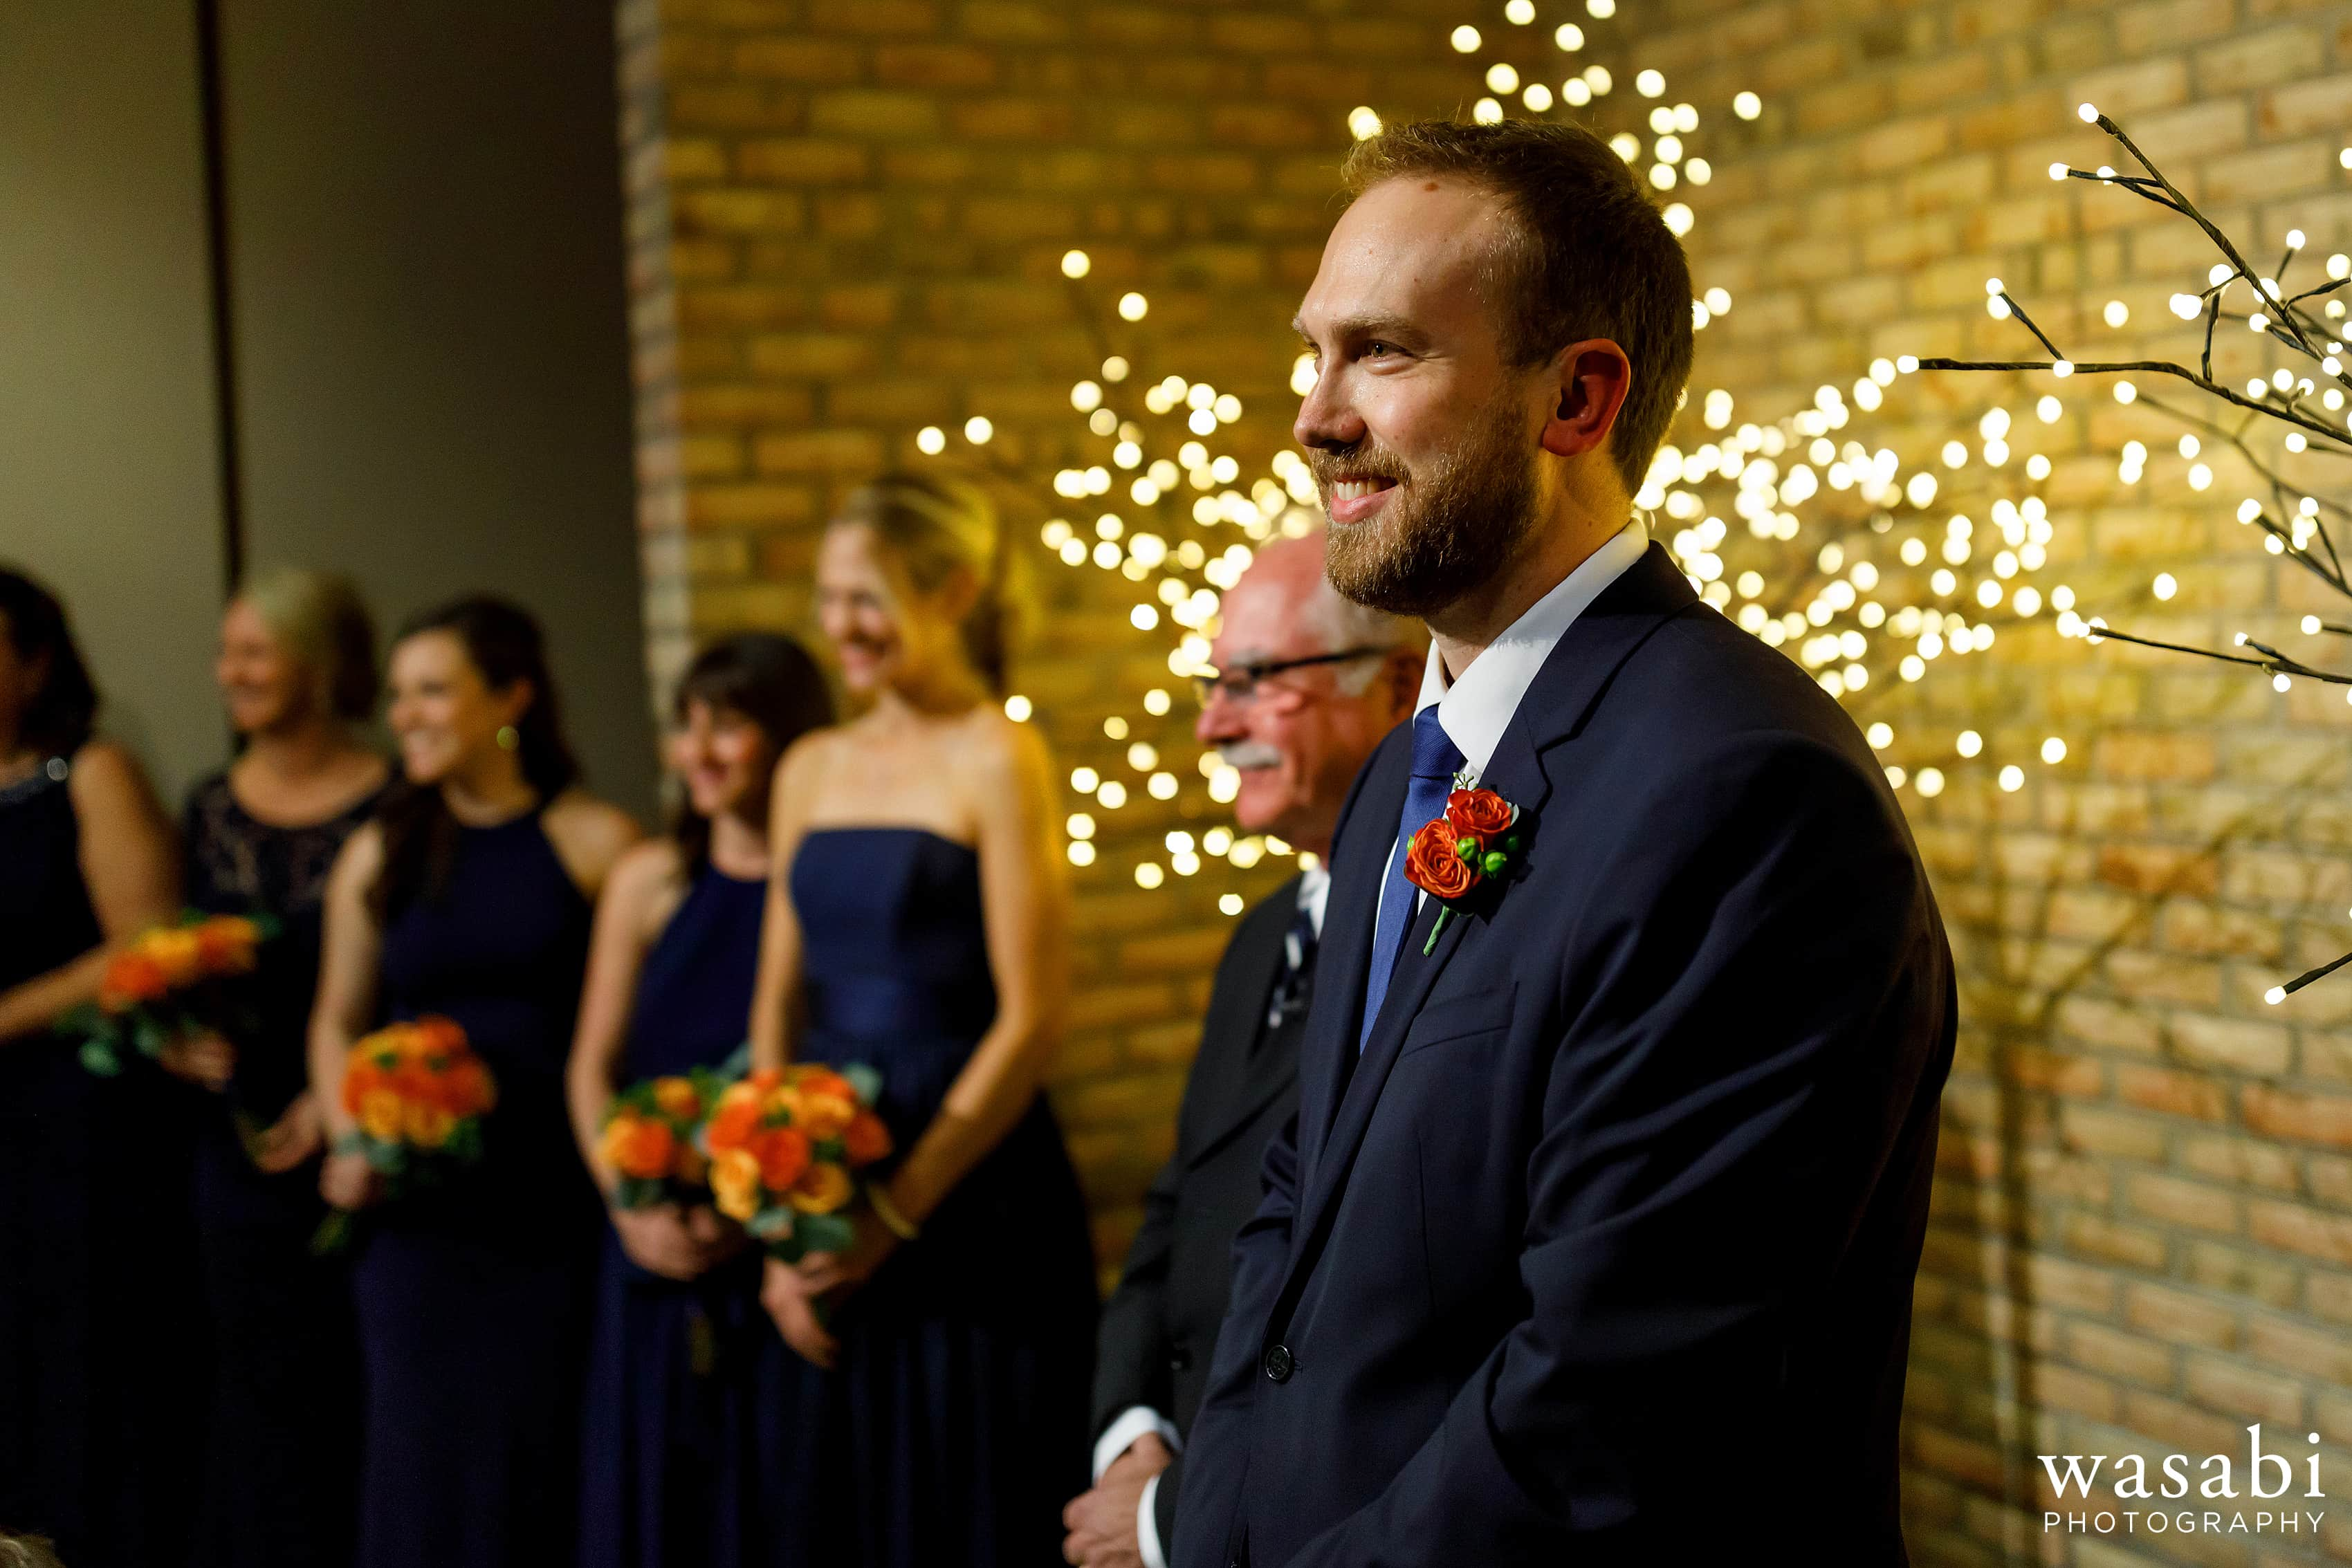 Groom watches as bride walks down the aisle during their wedding at Eberhard Center